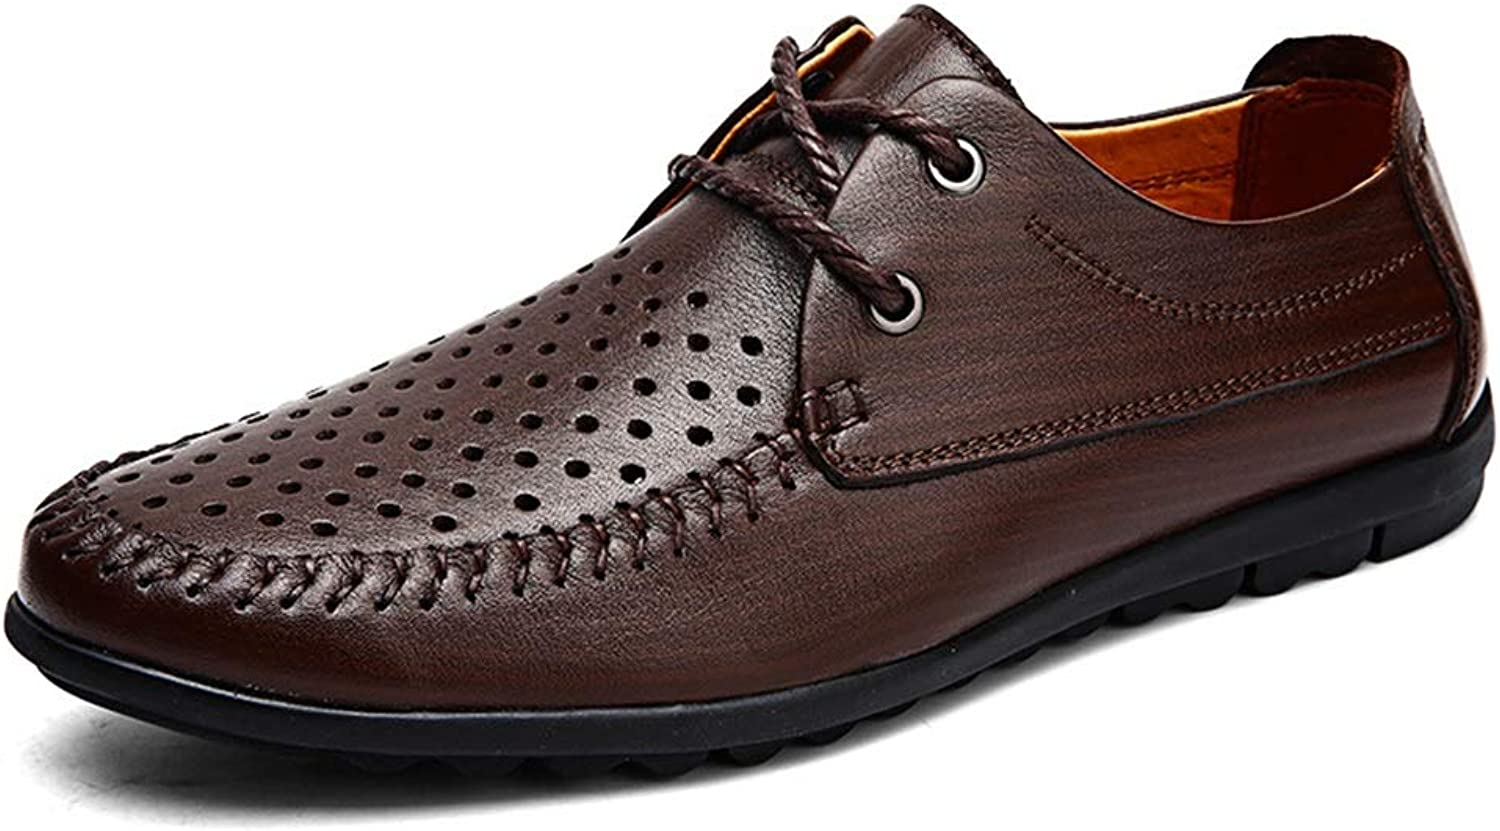 Oxford shoes for Men Formal shoes Lace Up Style OX Leather Simple Pure color (Hollow Optional) (color   Hollow Brown, Size   9.5 D(M) US)